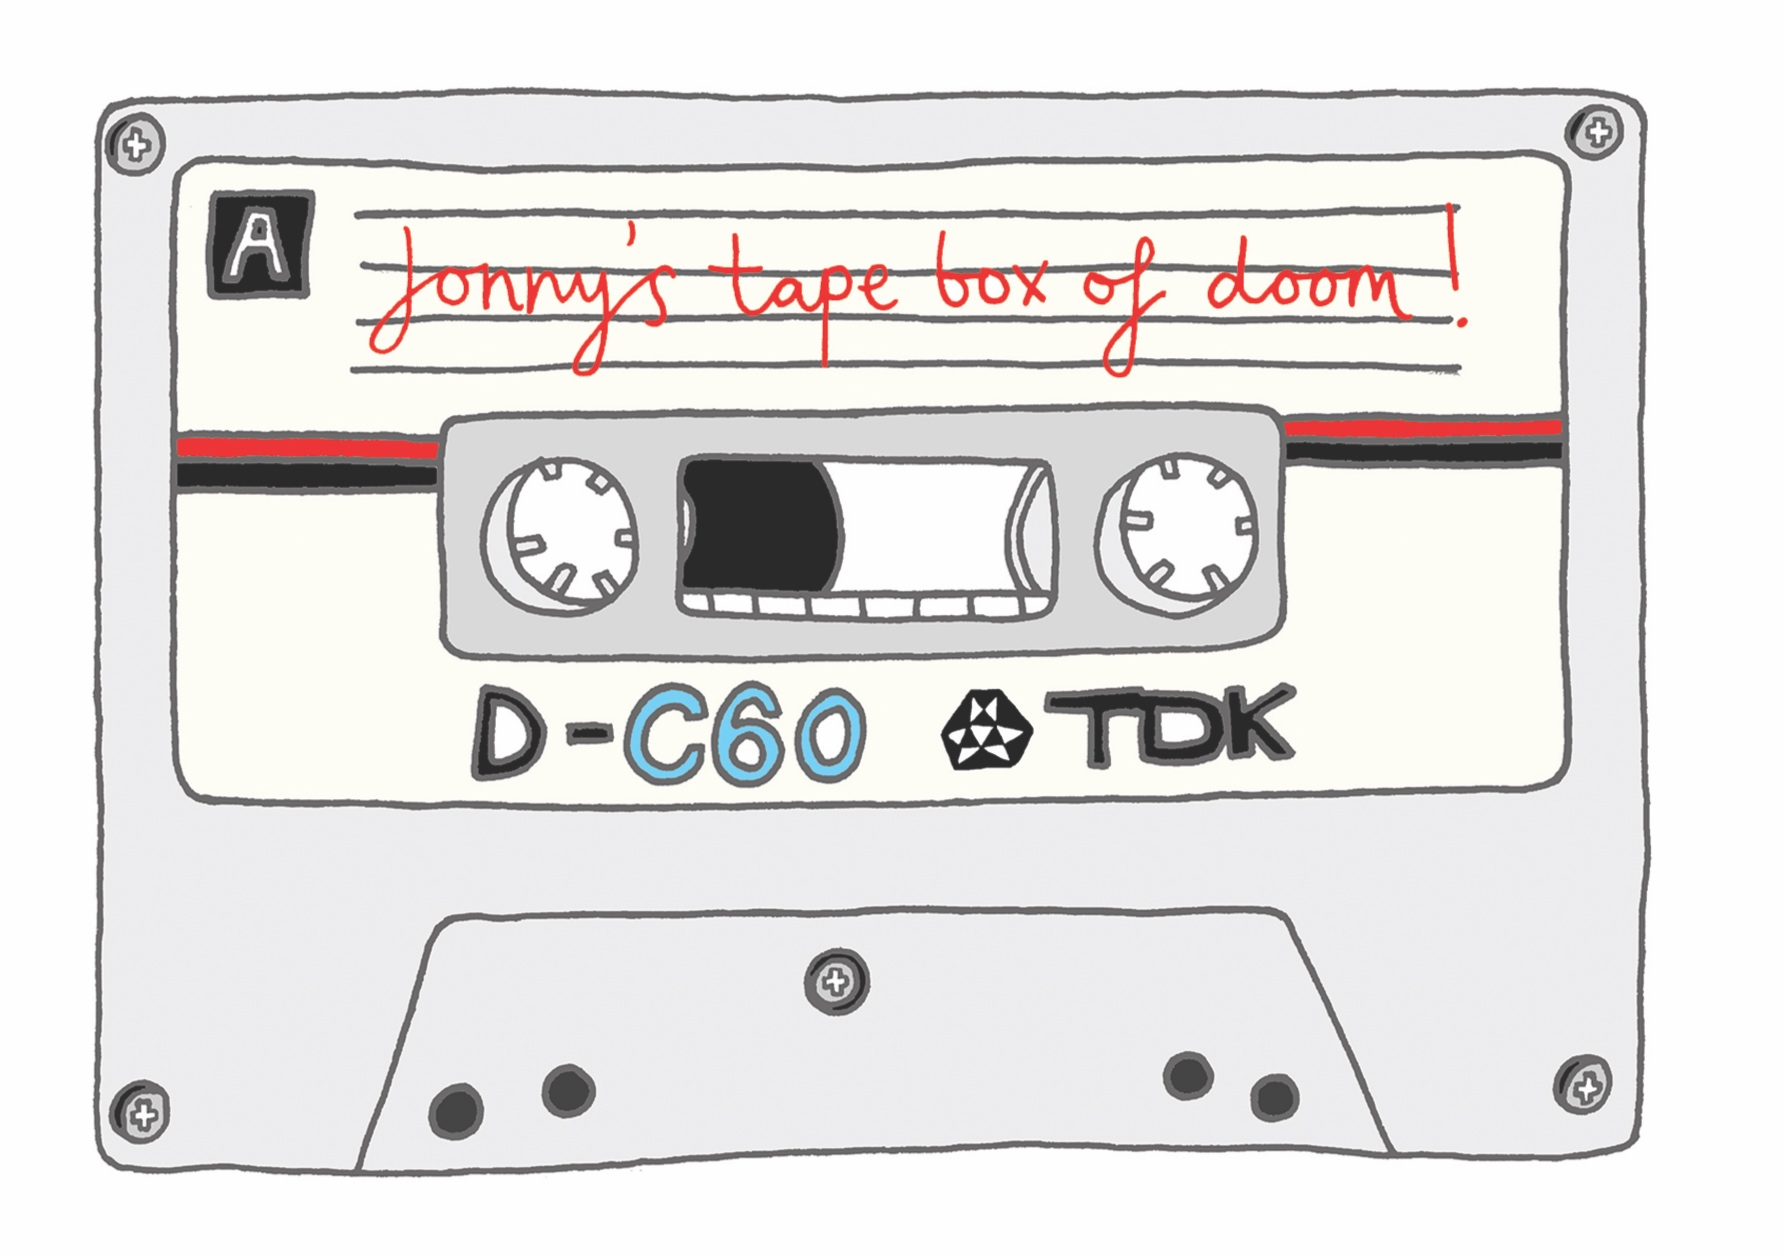 A tape box of doom drawn for Jonny.